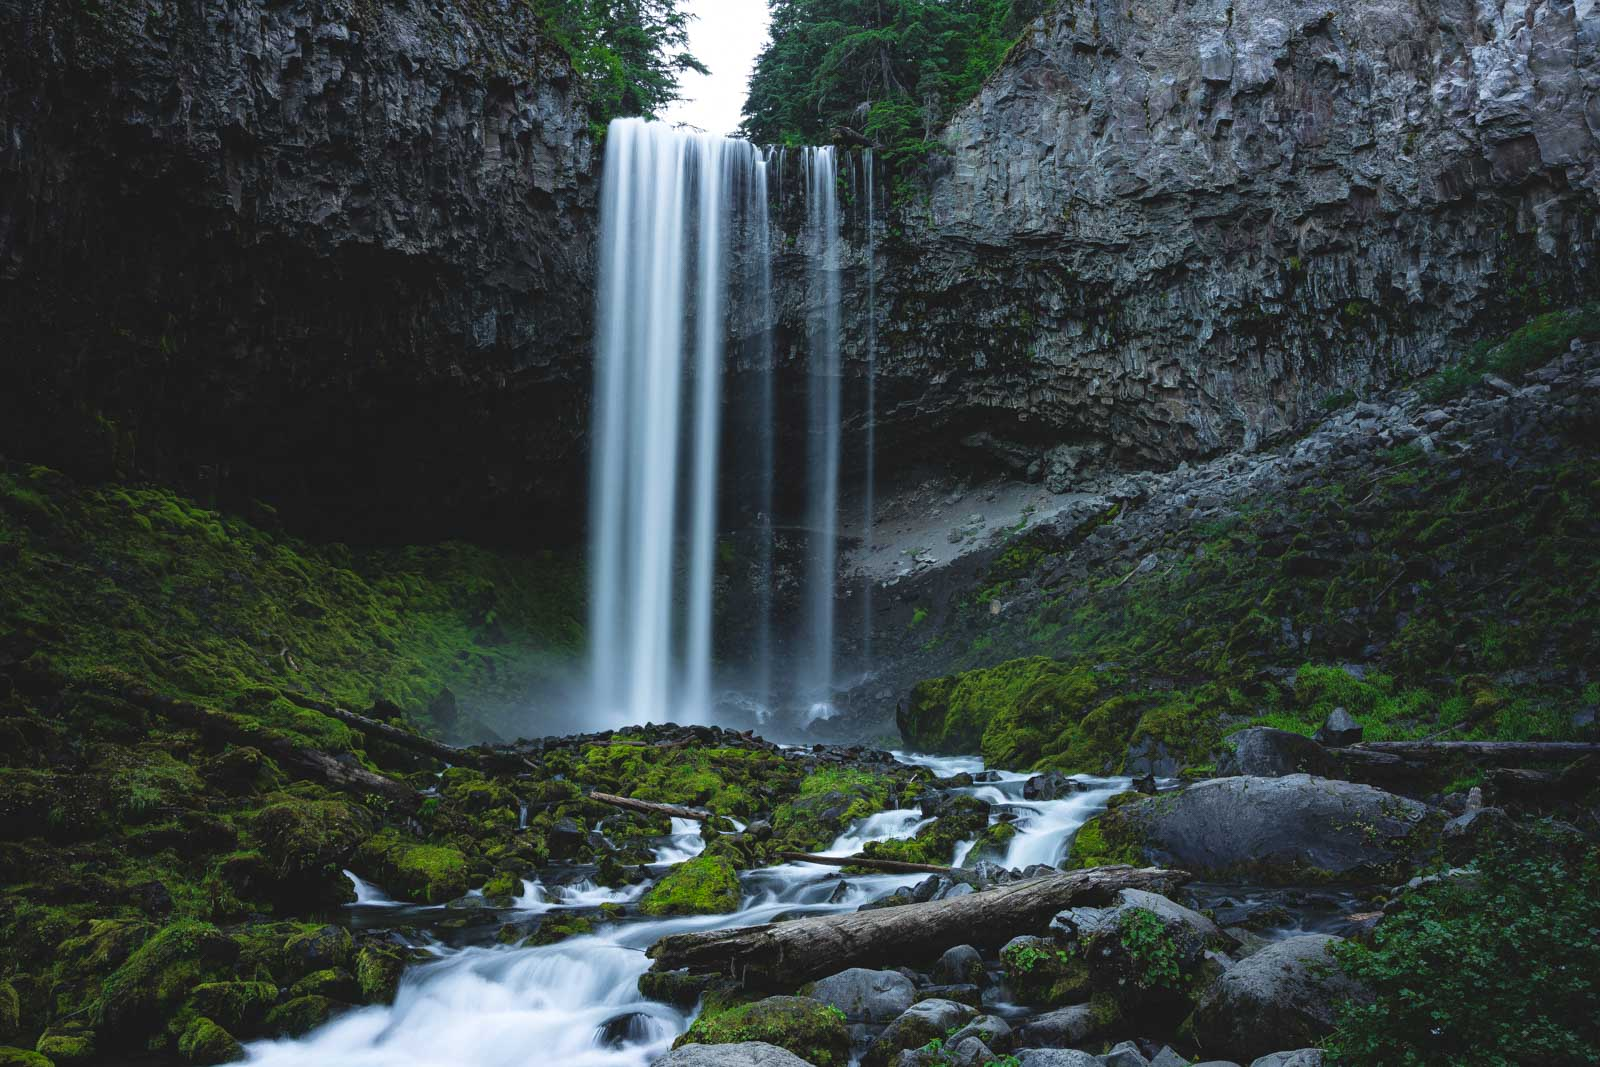 Relaxation at Tamanawas Falls on your Oregon road trip.